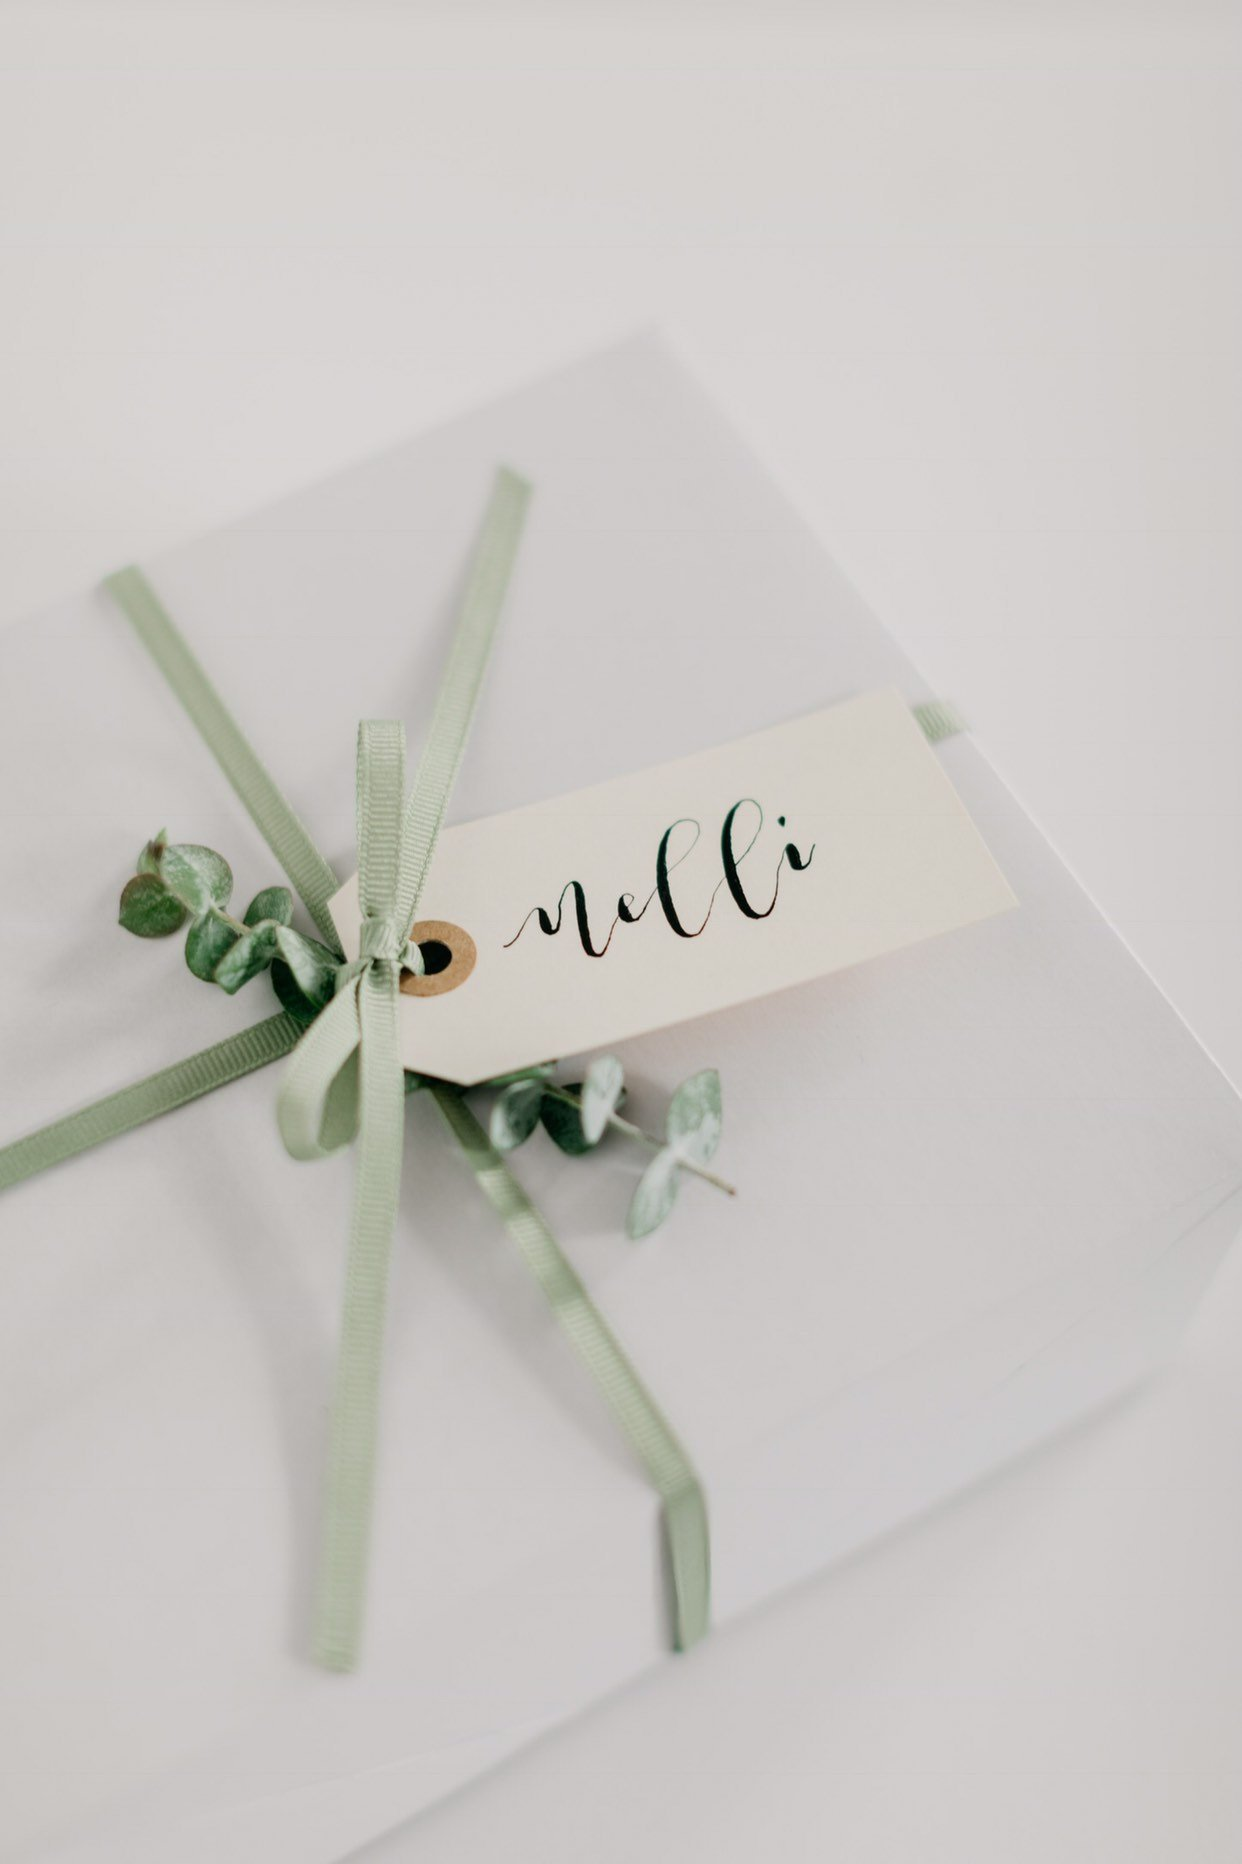 Flourishes by Fran - When you're wrapping Holiday presents at home, these custom calligraphy gift tags by Frances Chae of Sacramento Ballet. will give your presents just the personal touch they need.